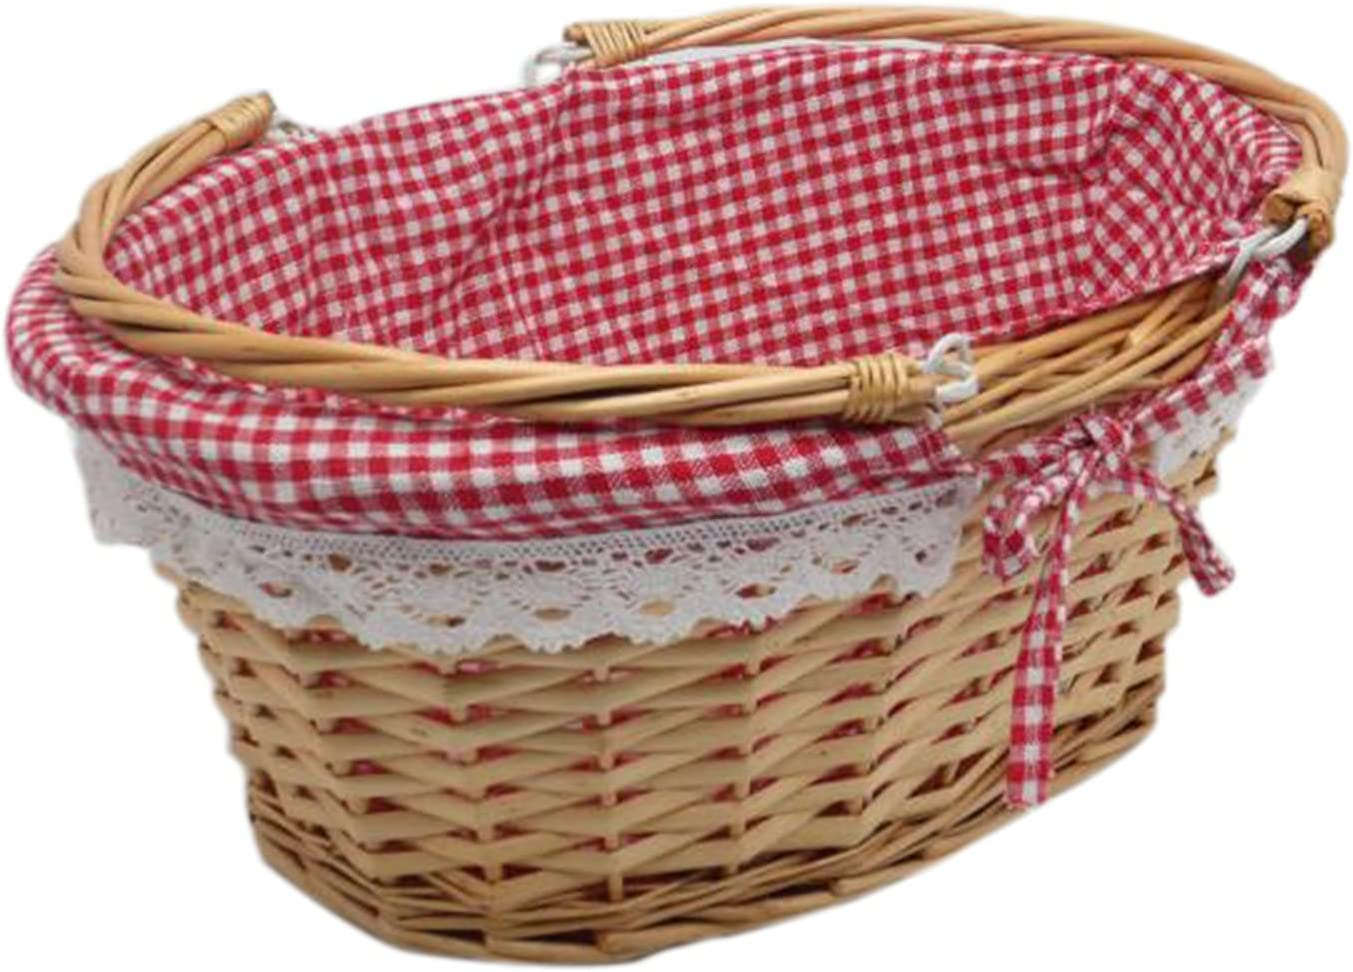 Picnic Basket Rattan New Free Shipping Woven Food Wicker Fruit Credence Bask